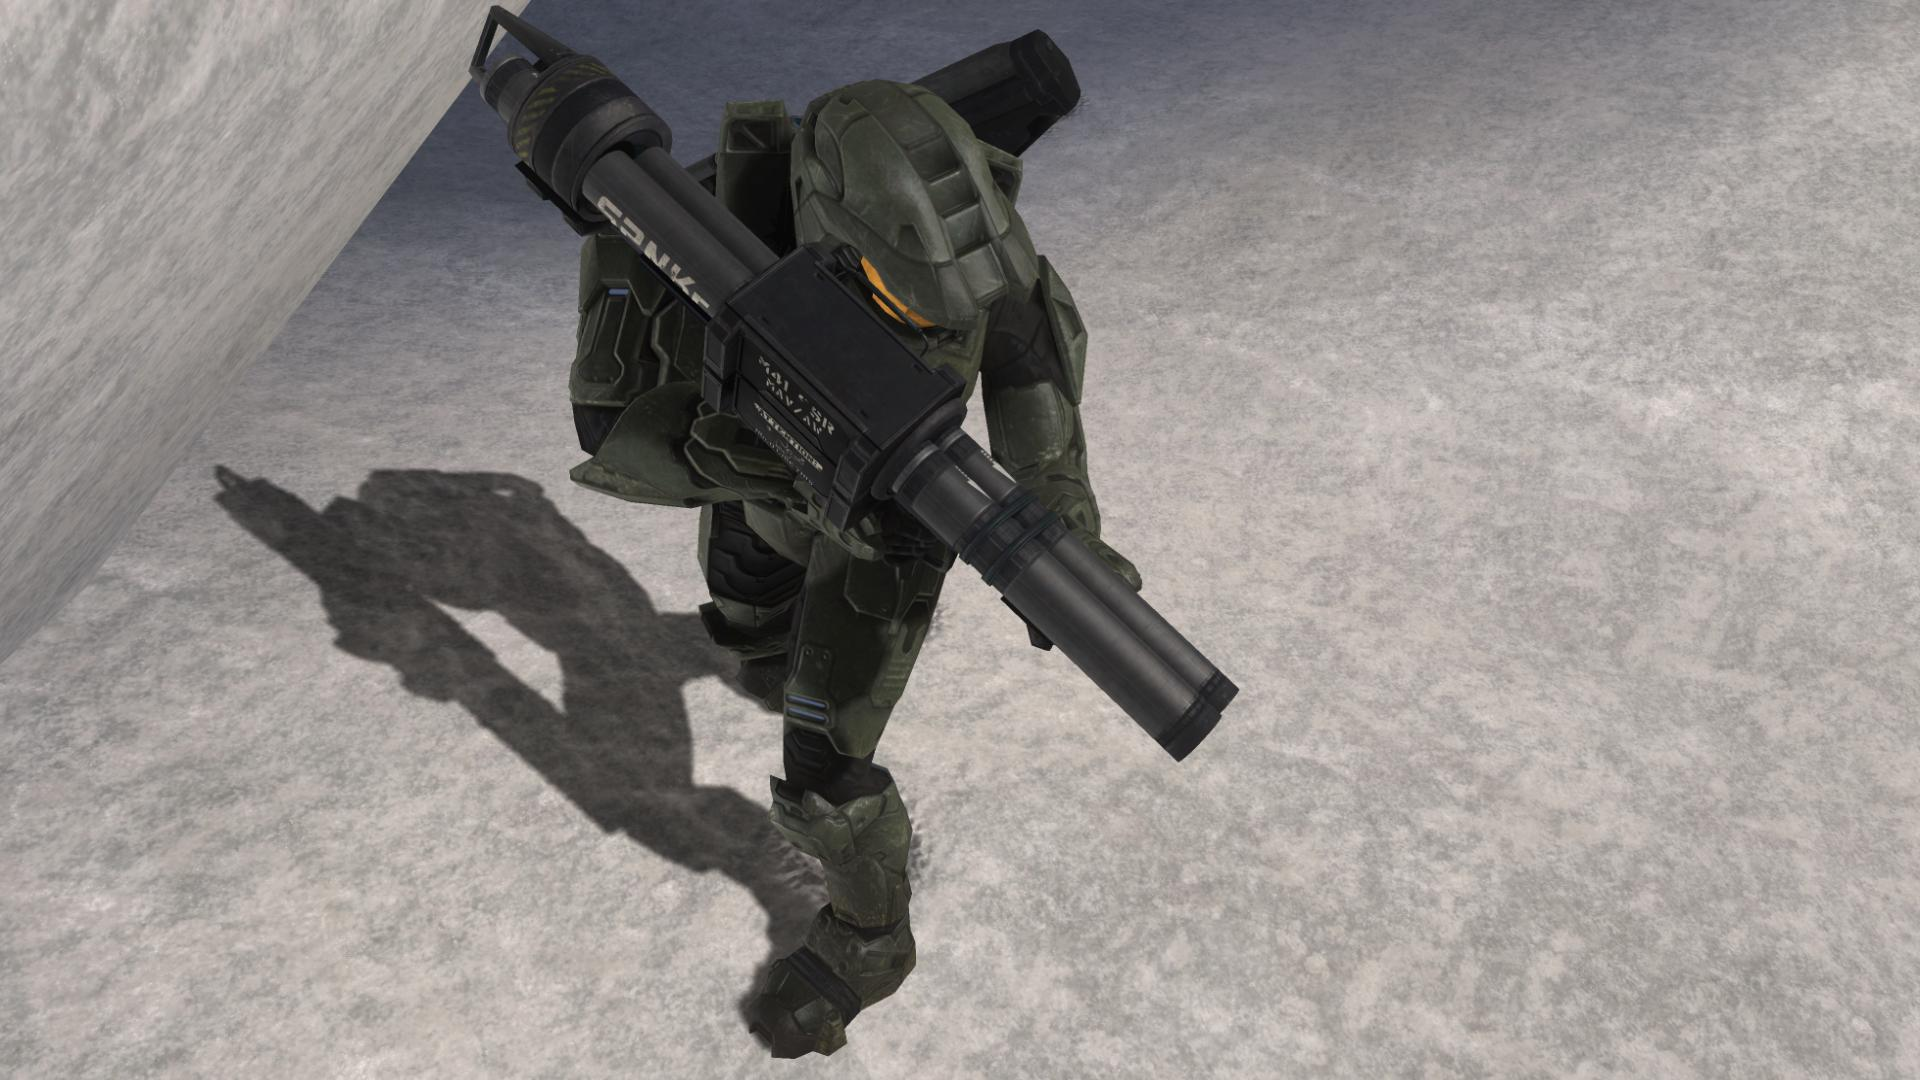 1522701915 b5131bccd9 o Halo 3: Carrying RPG